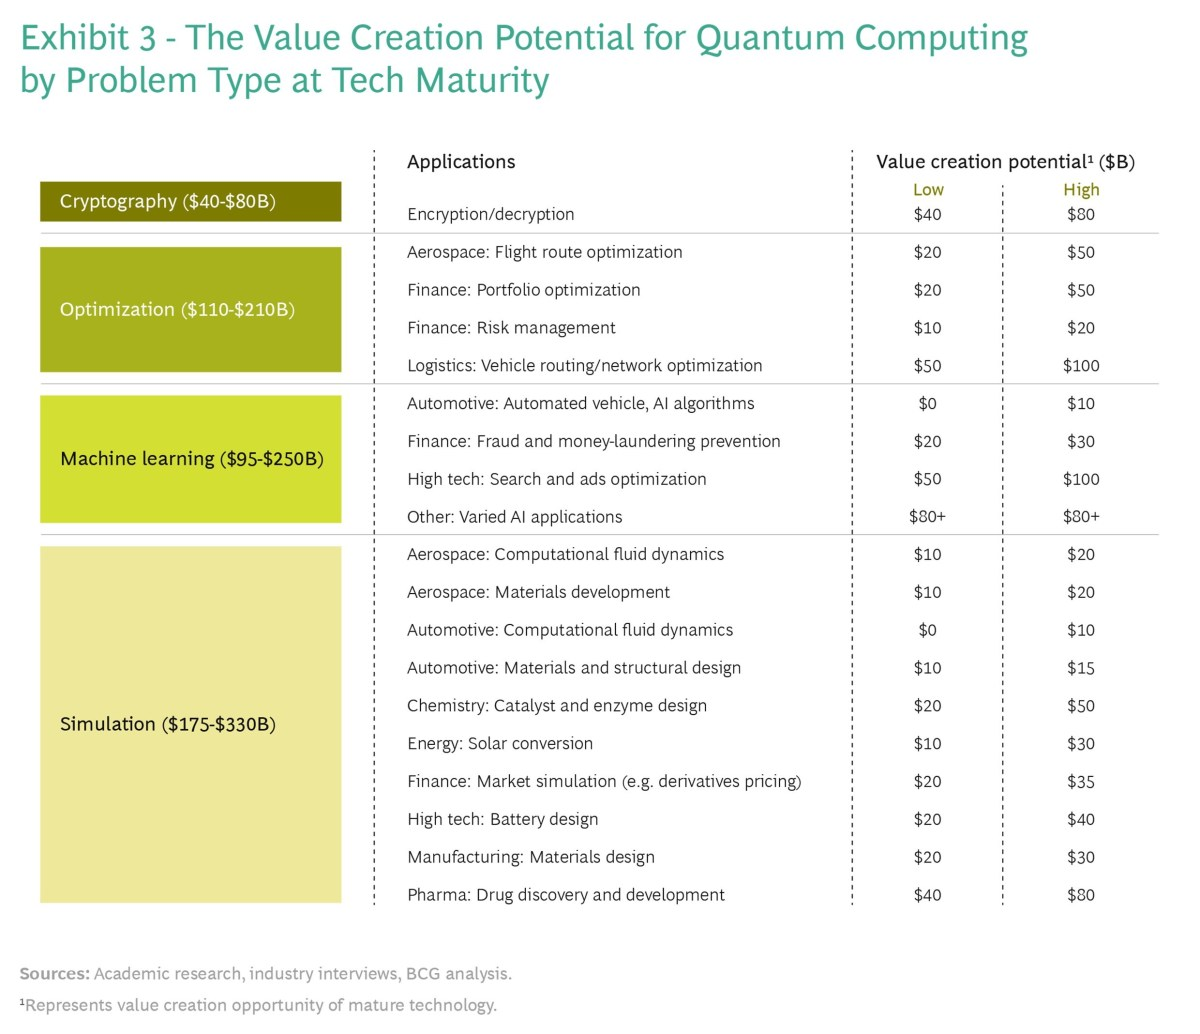 The BCG research estimates that quantum computing will unlock new value across many industries, creating up to $850 billion in annual value by 2040.